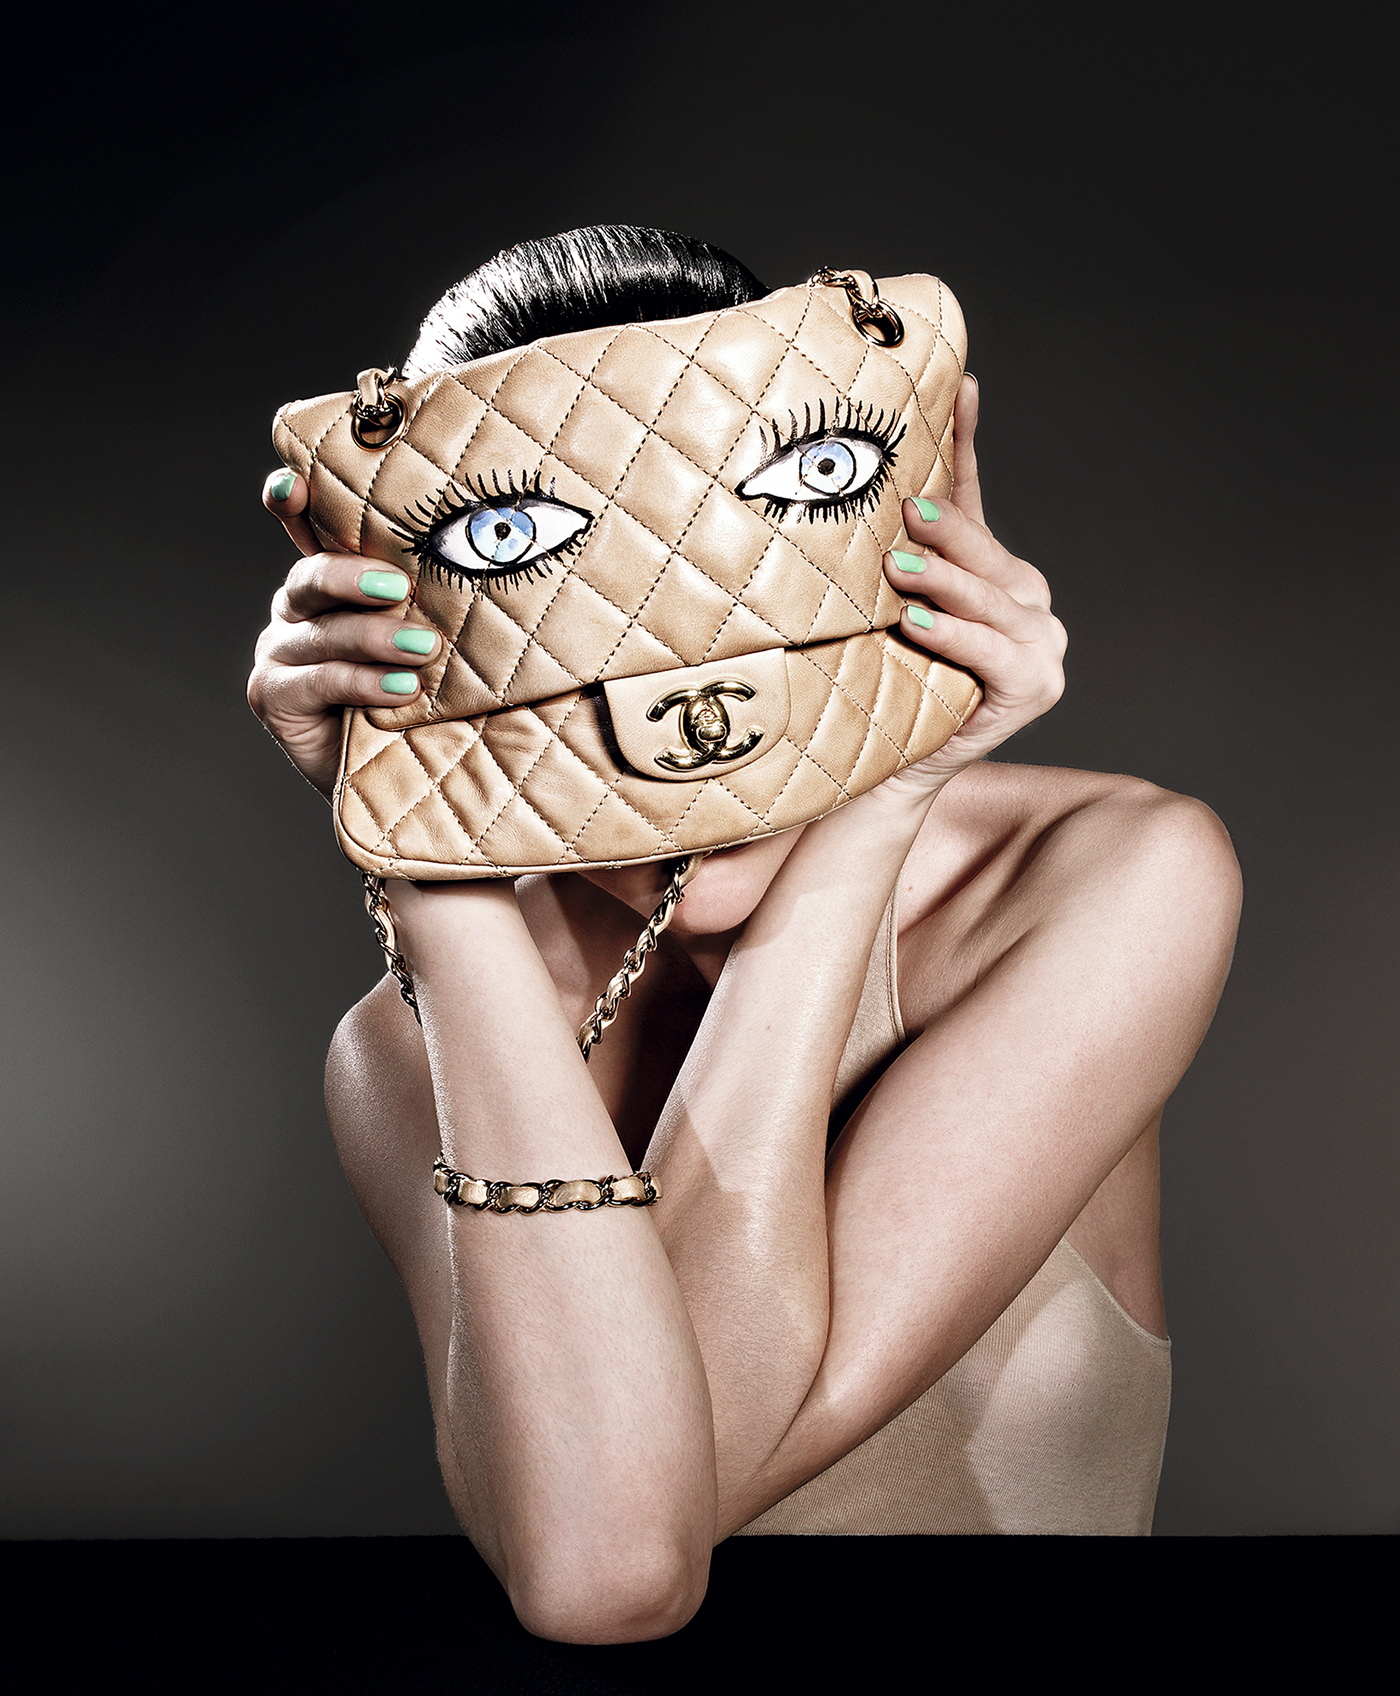 RICHARD BURBRIDGE, Sara Blomqvist holding, a CHANEL bag, 2010, ©Richard Burbridge